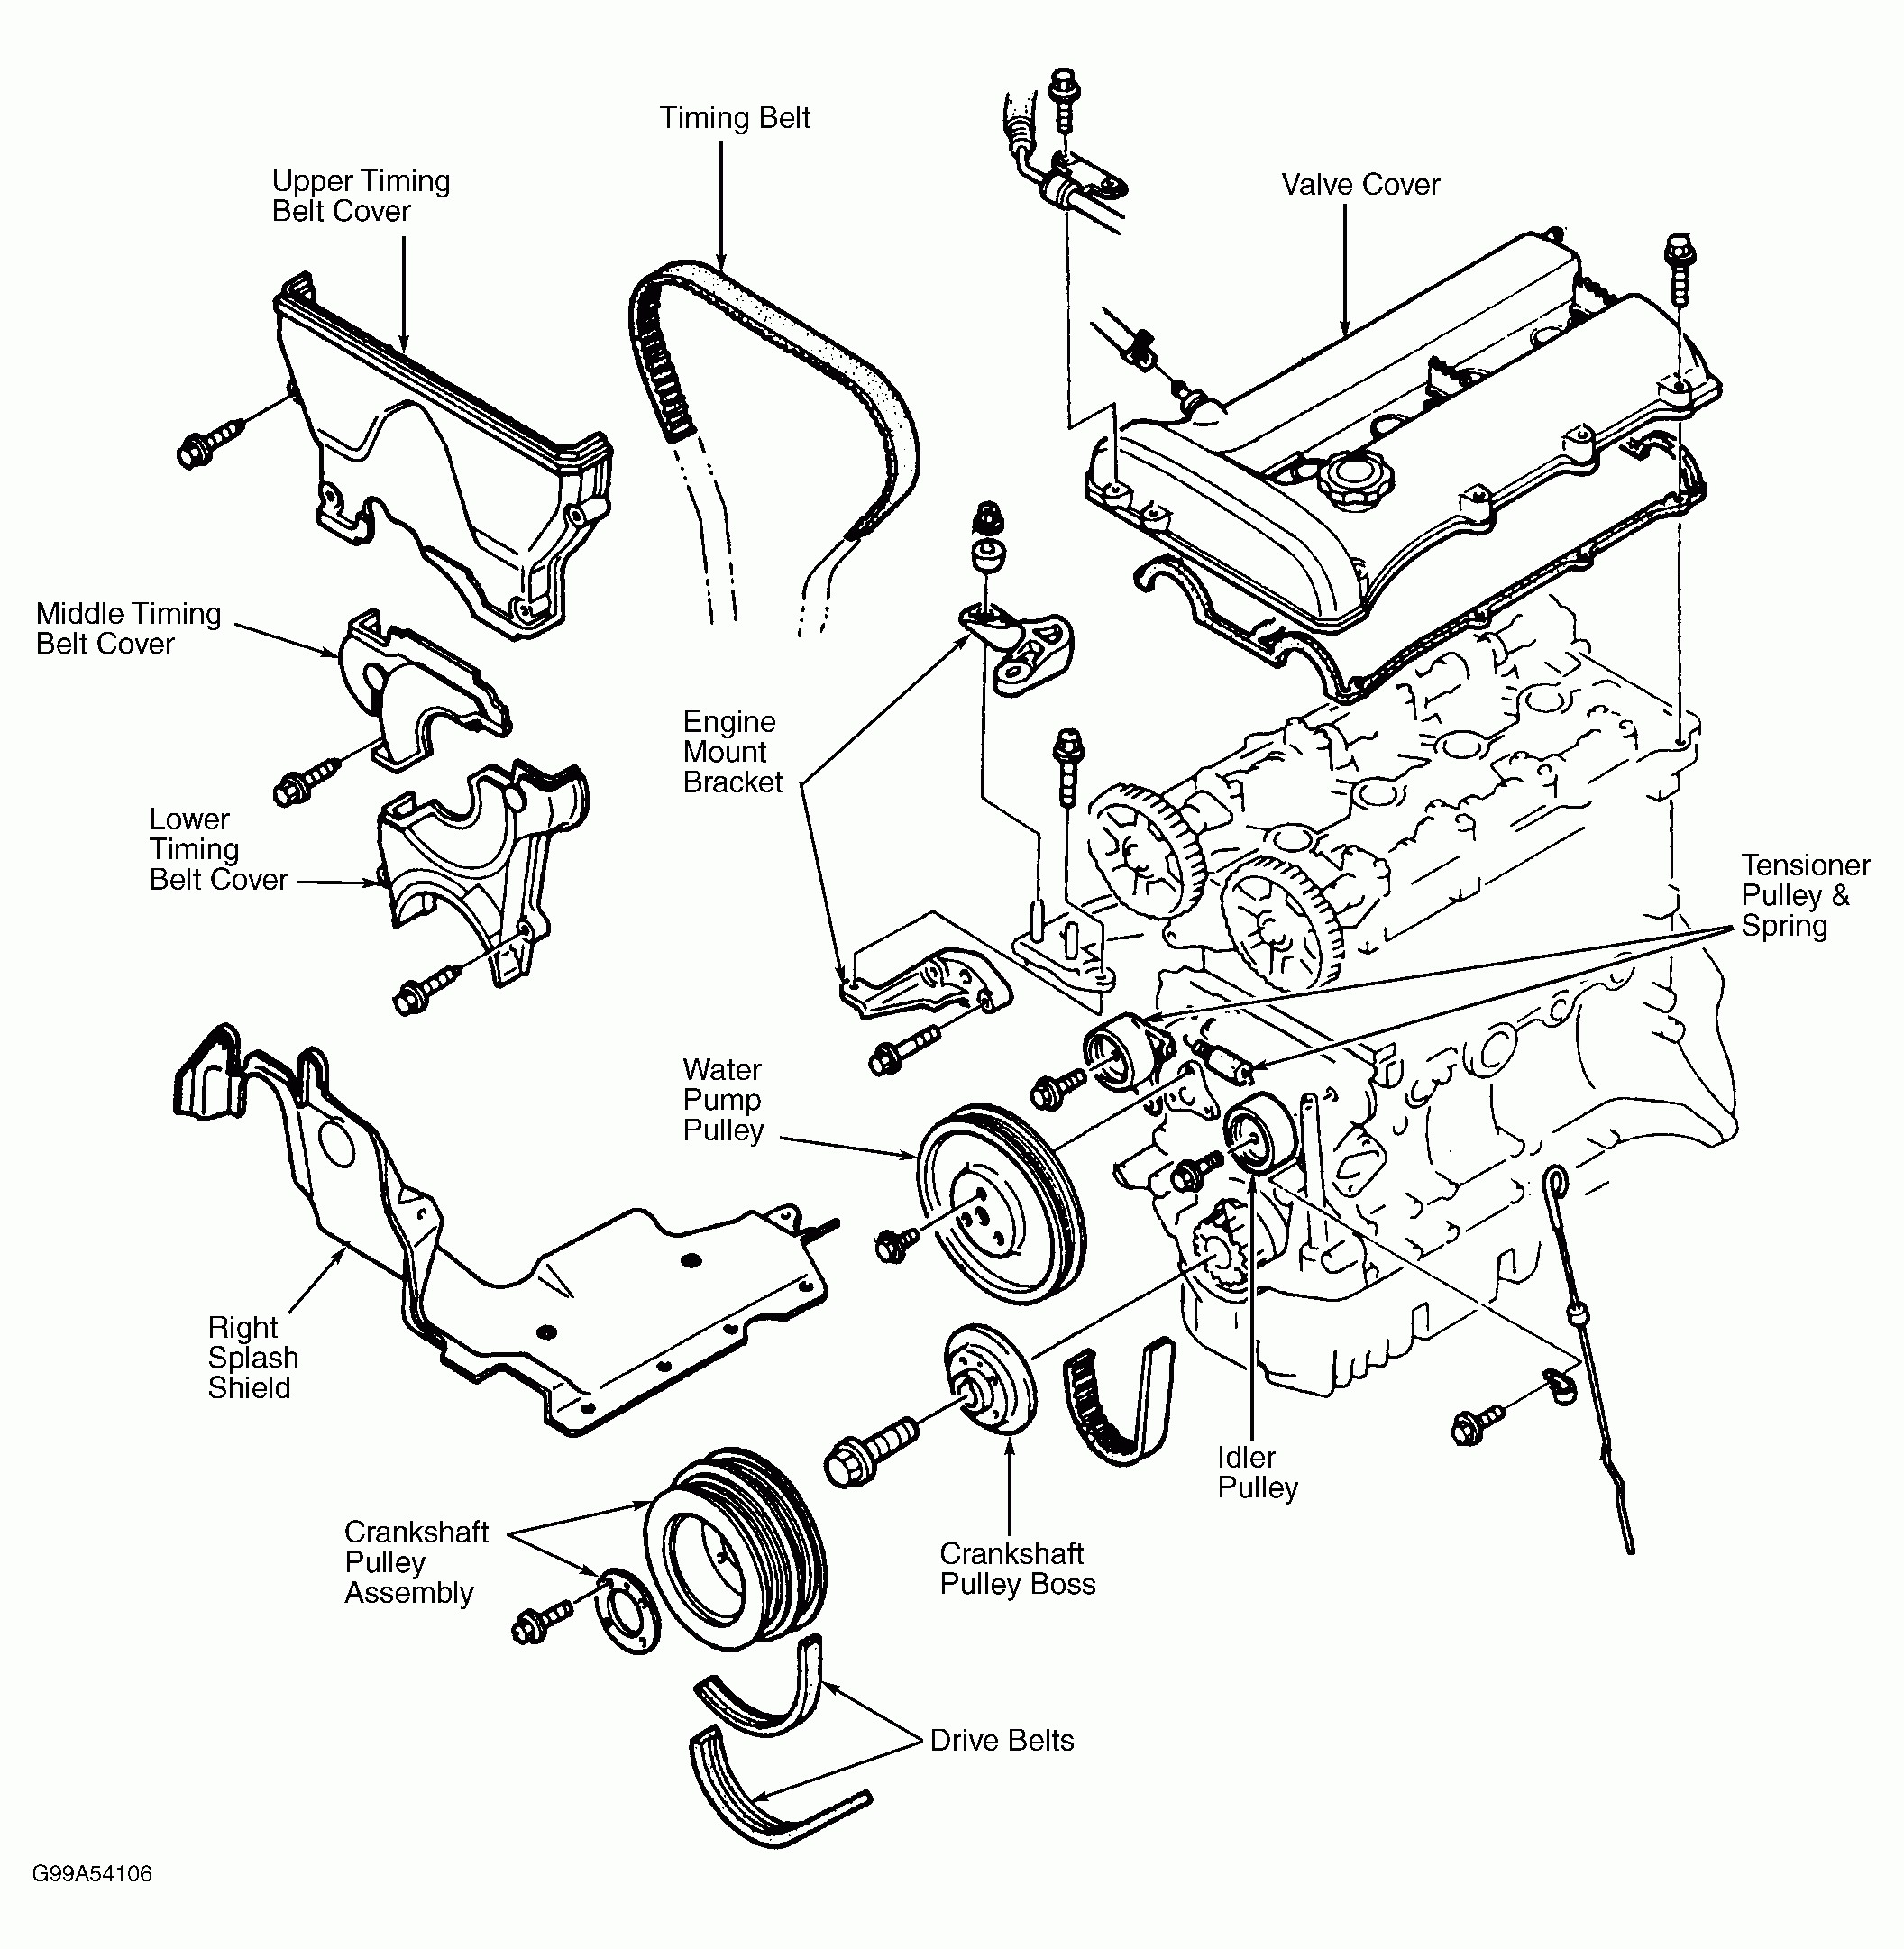 1997 Mazda Protege Parts Diagram Wiring Diagram For Free